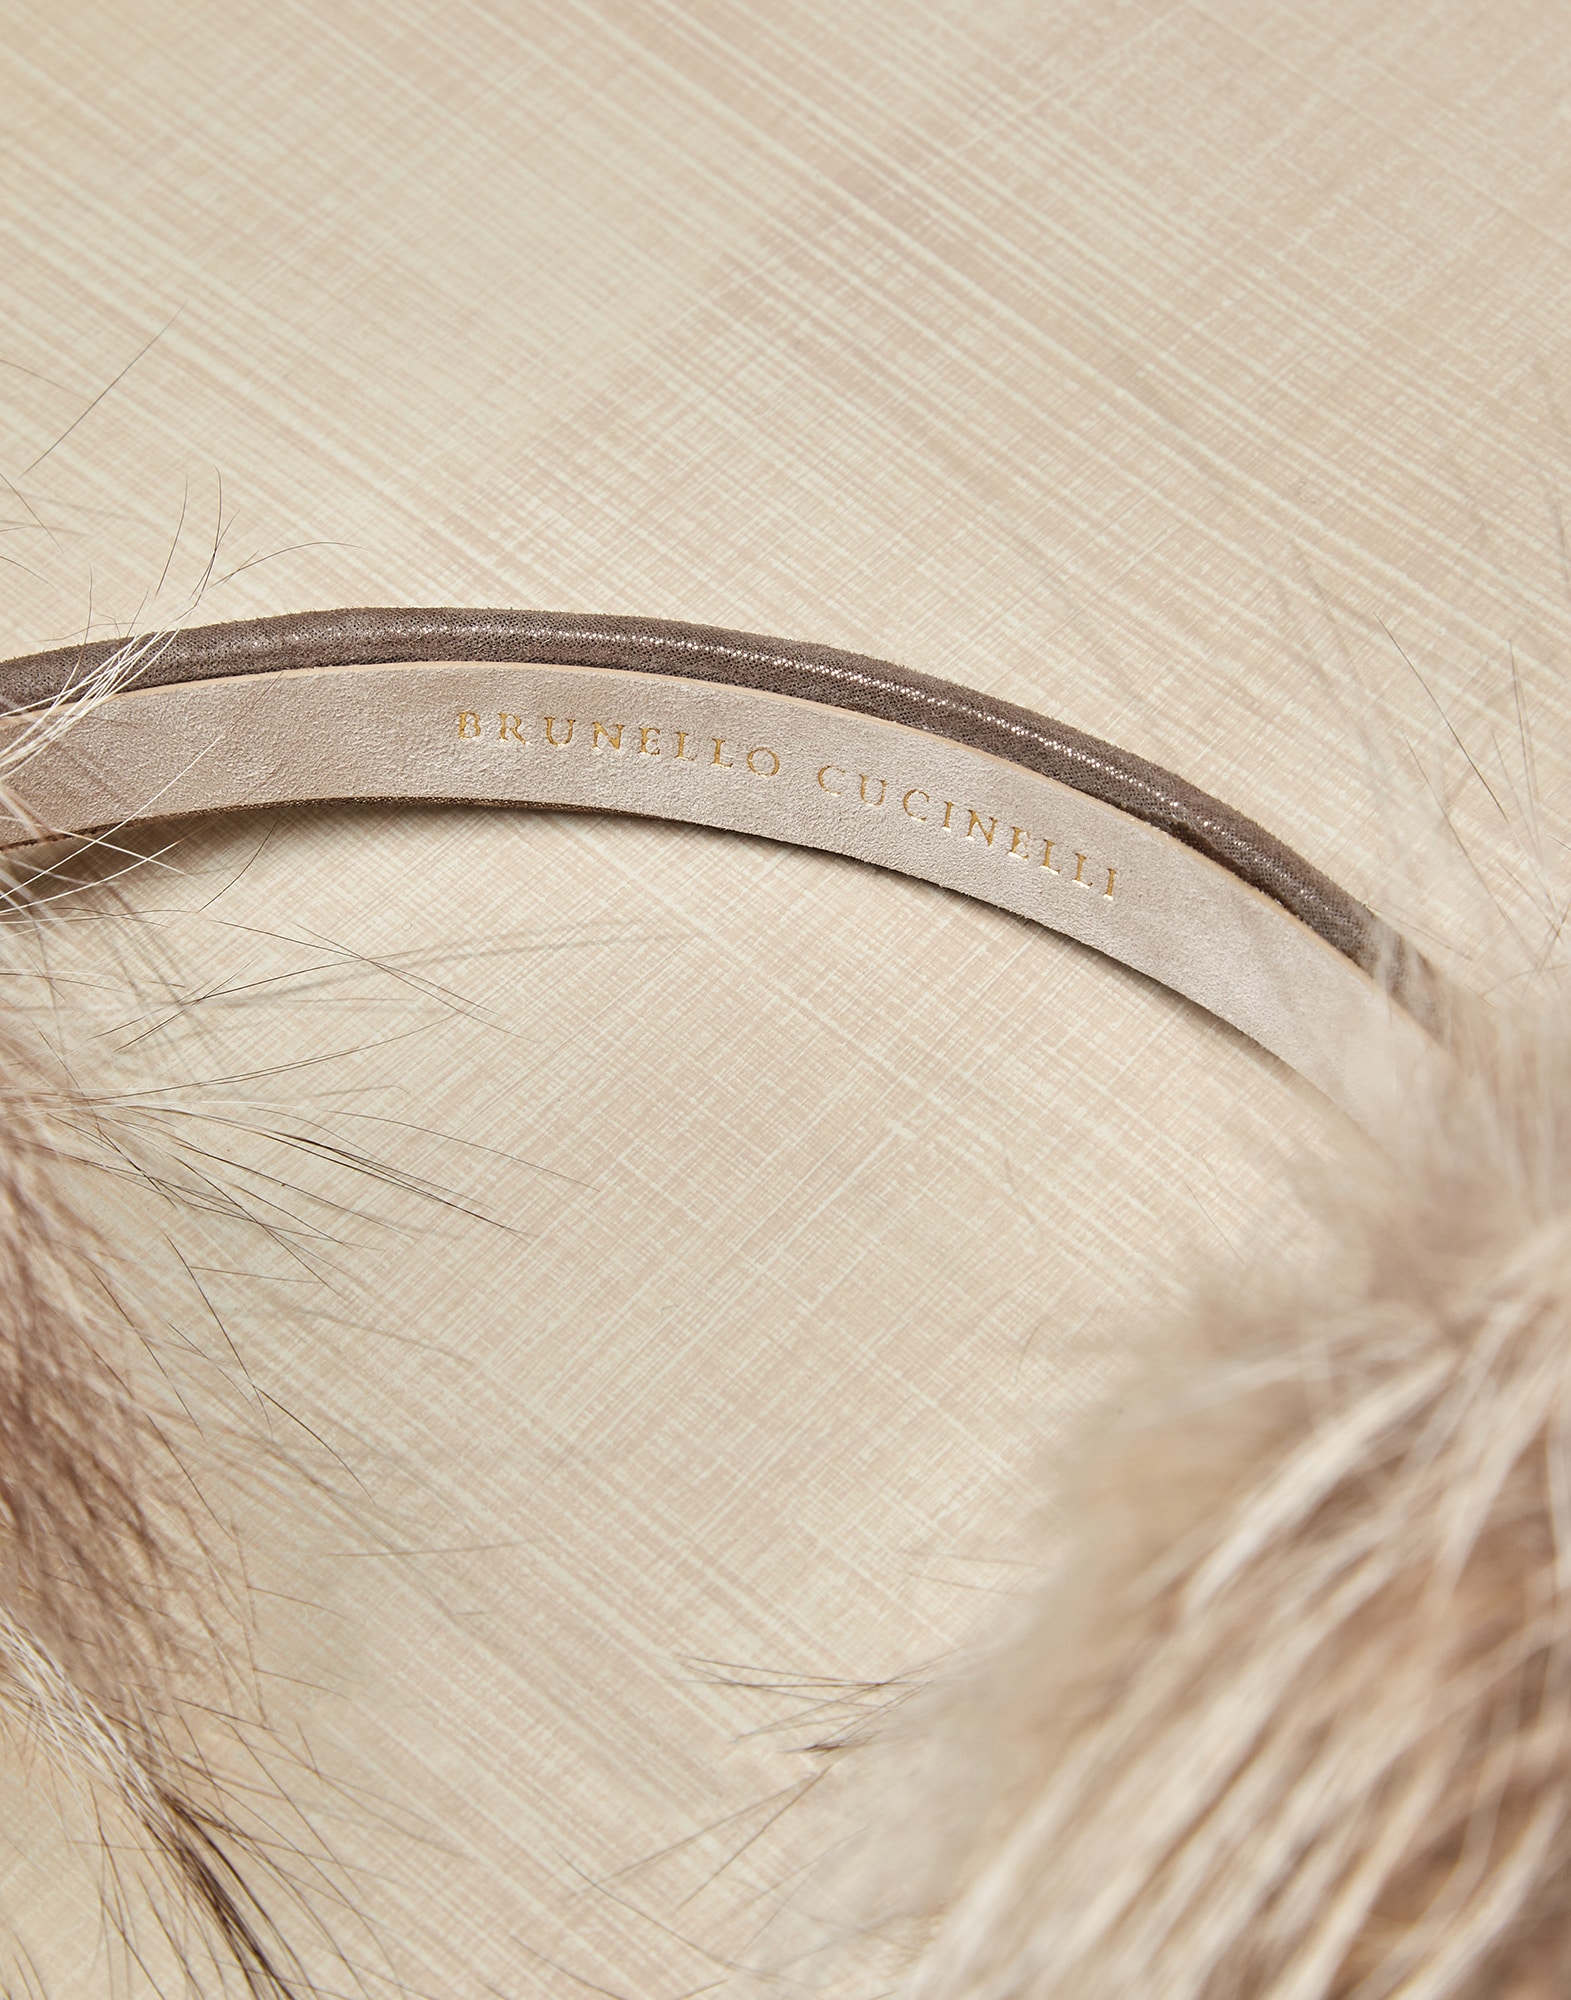 Accessories Grey Little Things 2 - Brunello Cucinelli